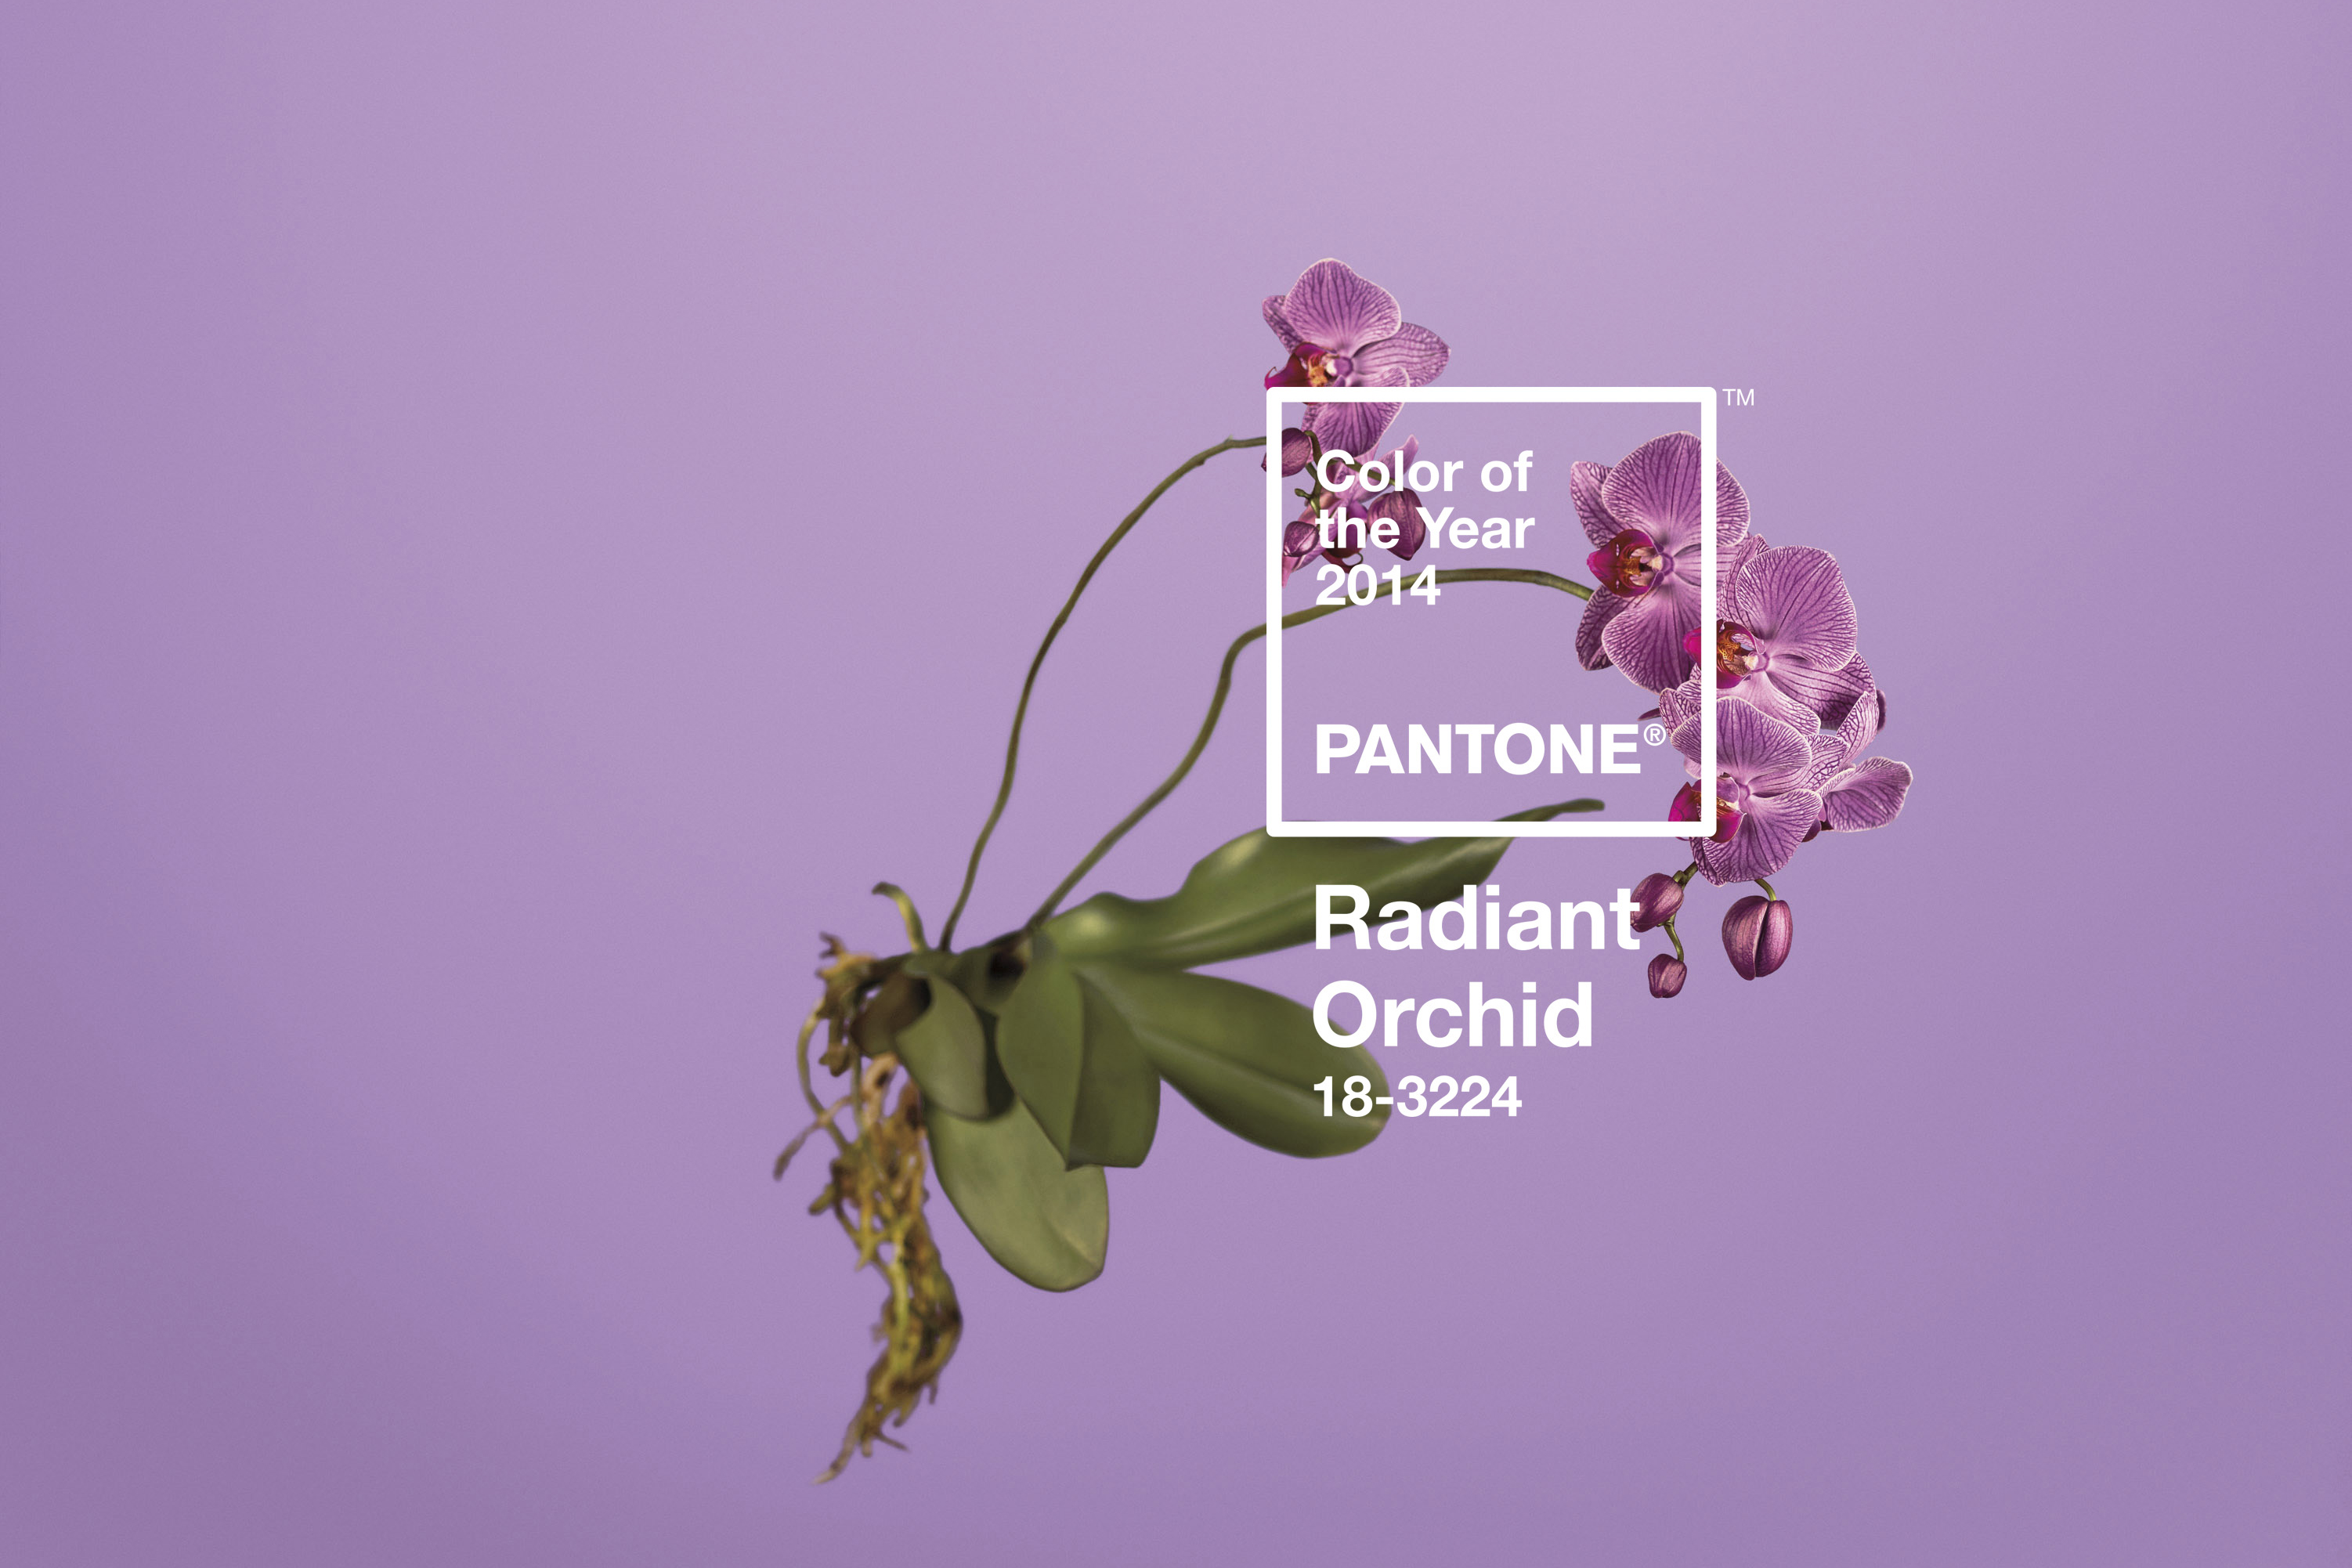 Radiant Orchid Pantone 18-3224-600